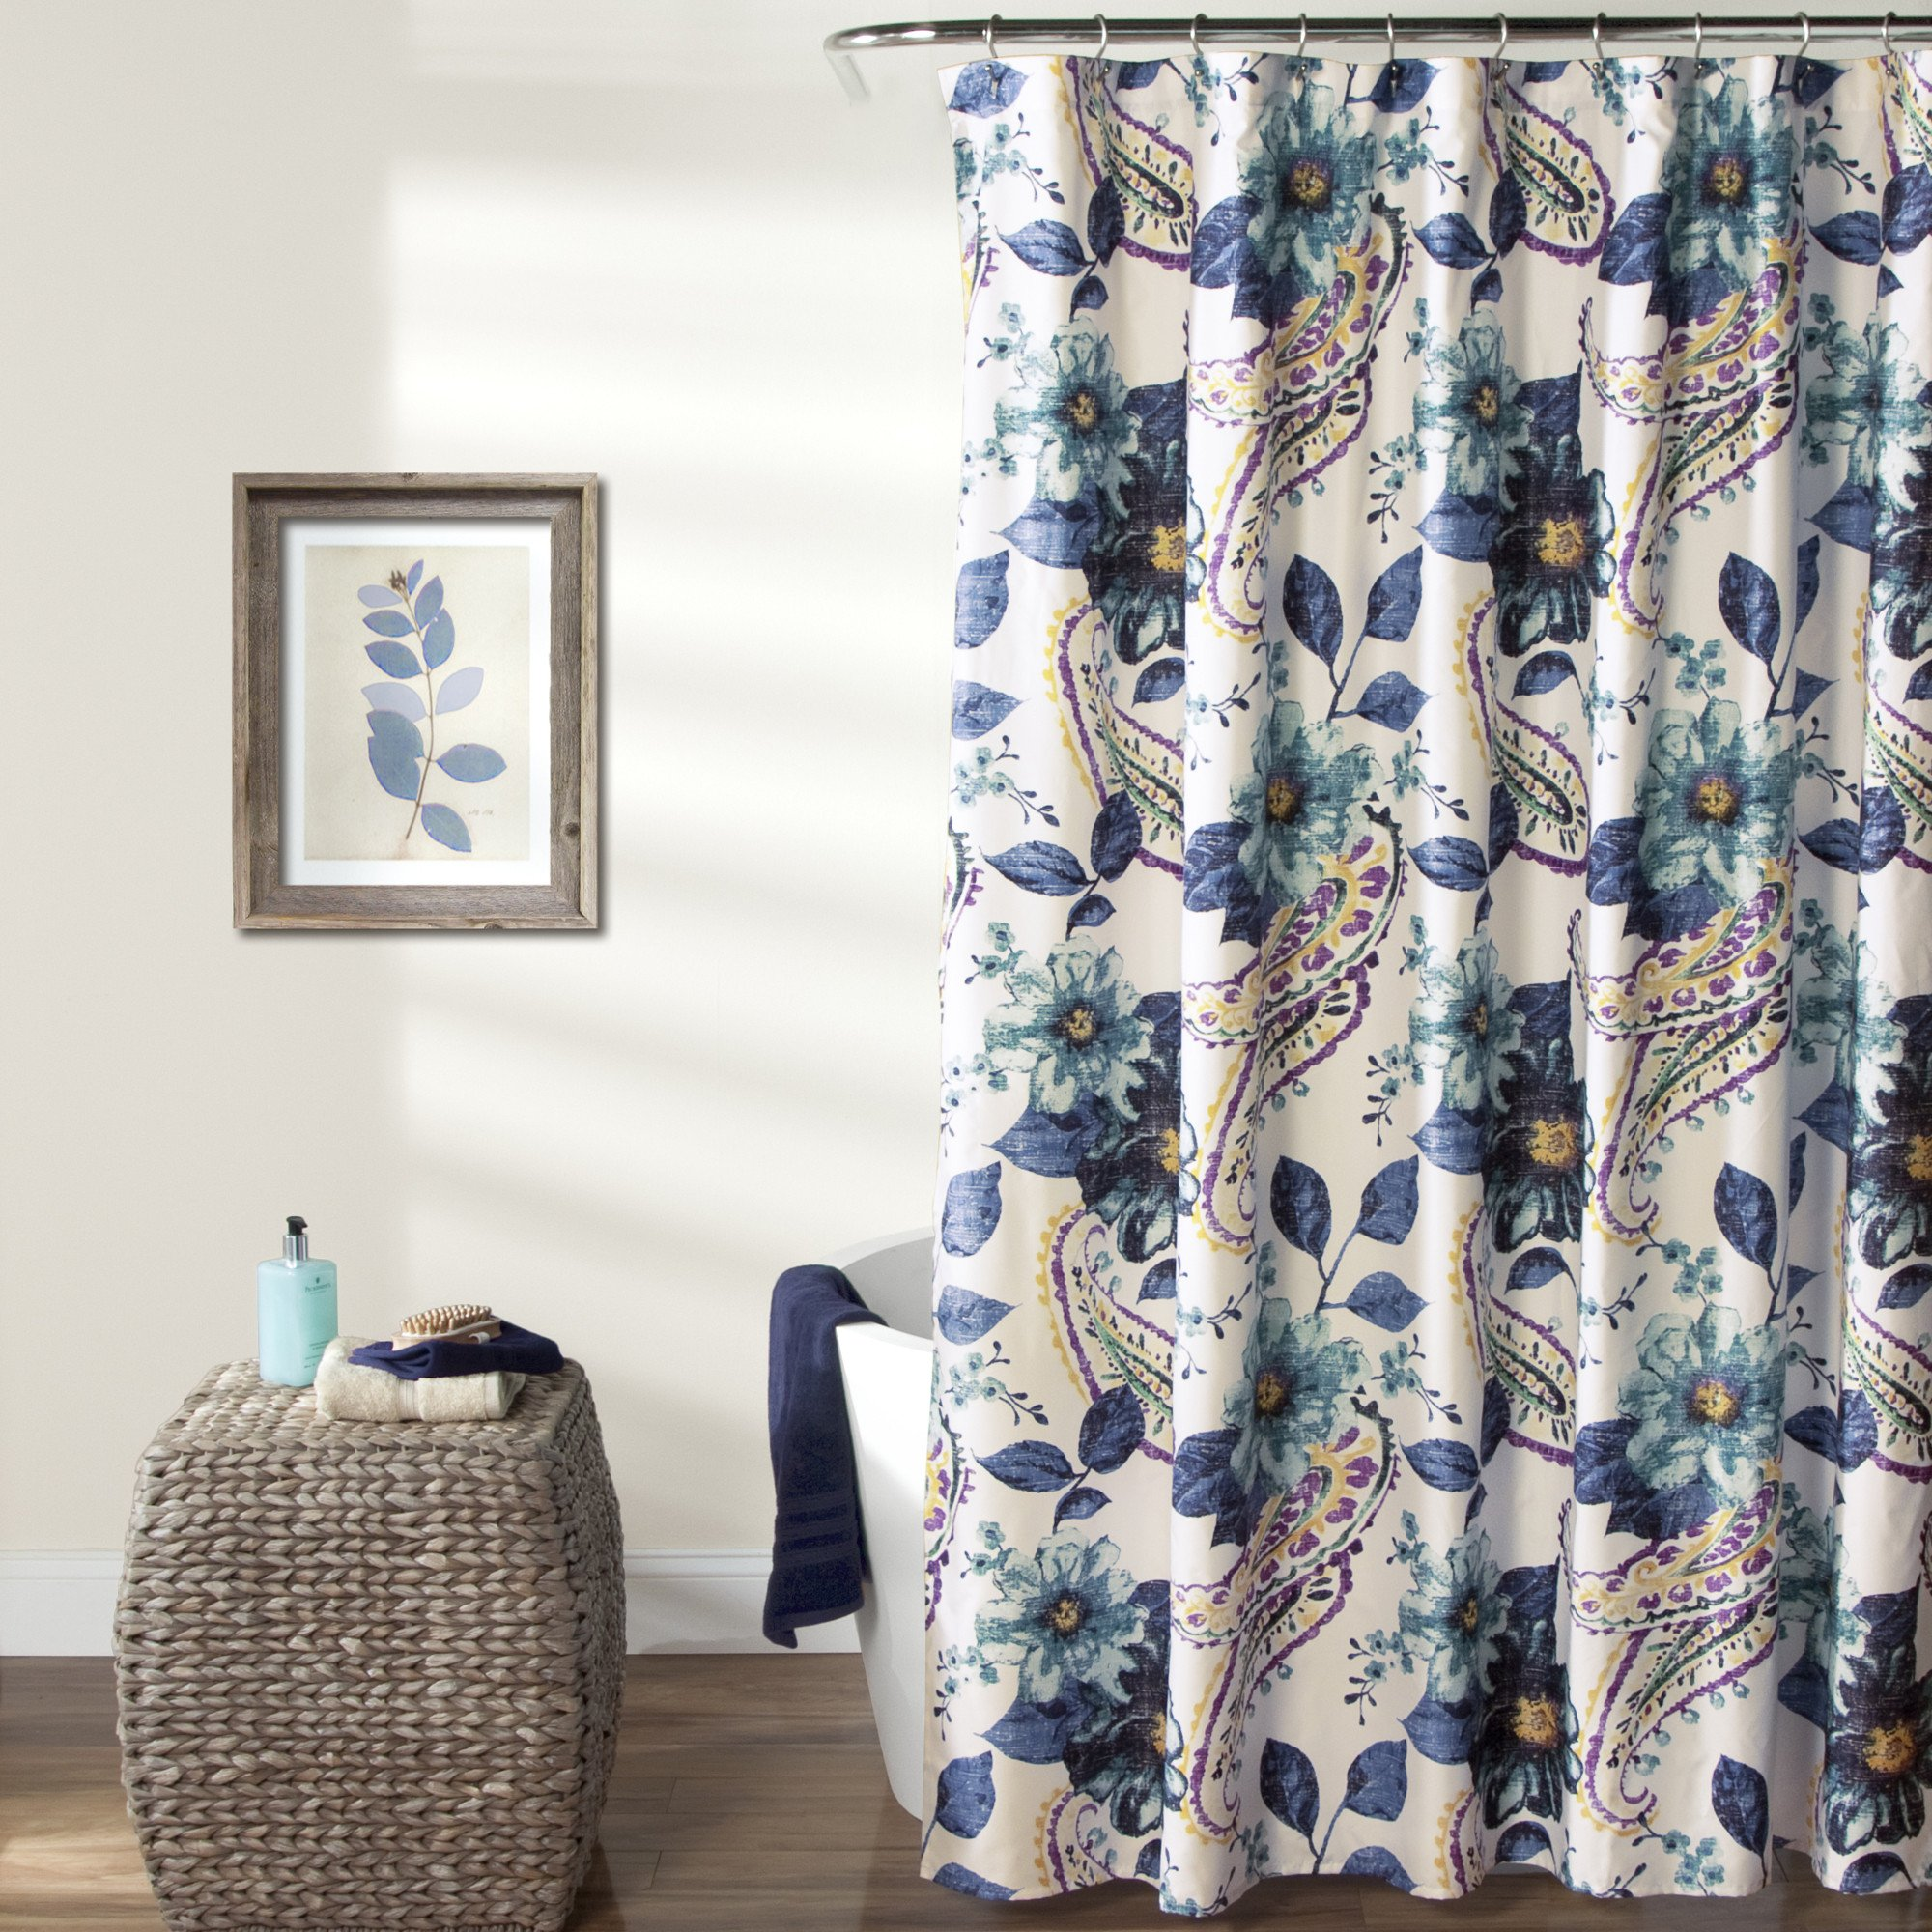 Flowers Shower Curtain | Floral Shower Curtain | India Shower Curtain